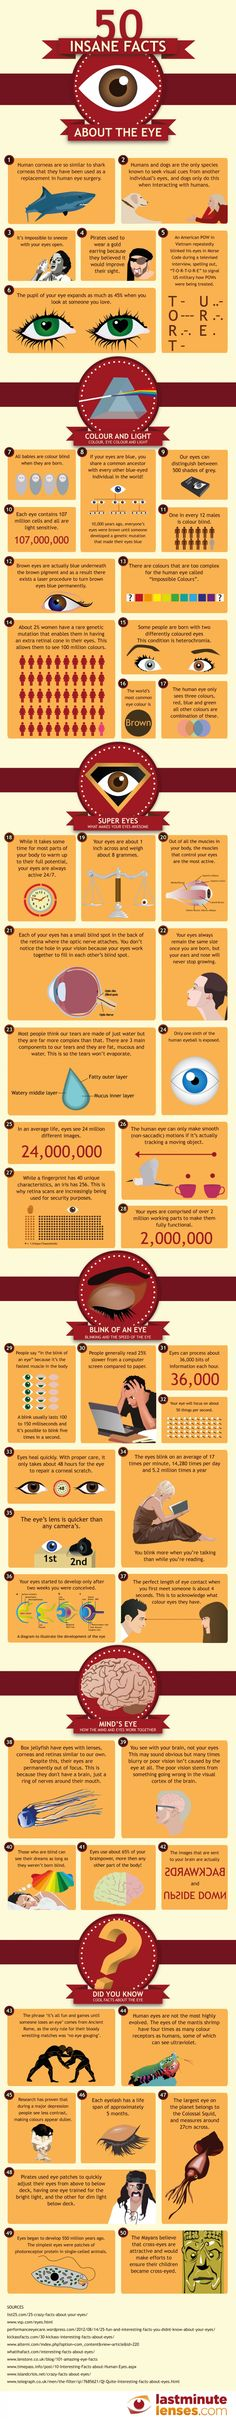 Infographic: 50 Facts About Your Eyes - DesignTAXI.com